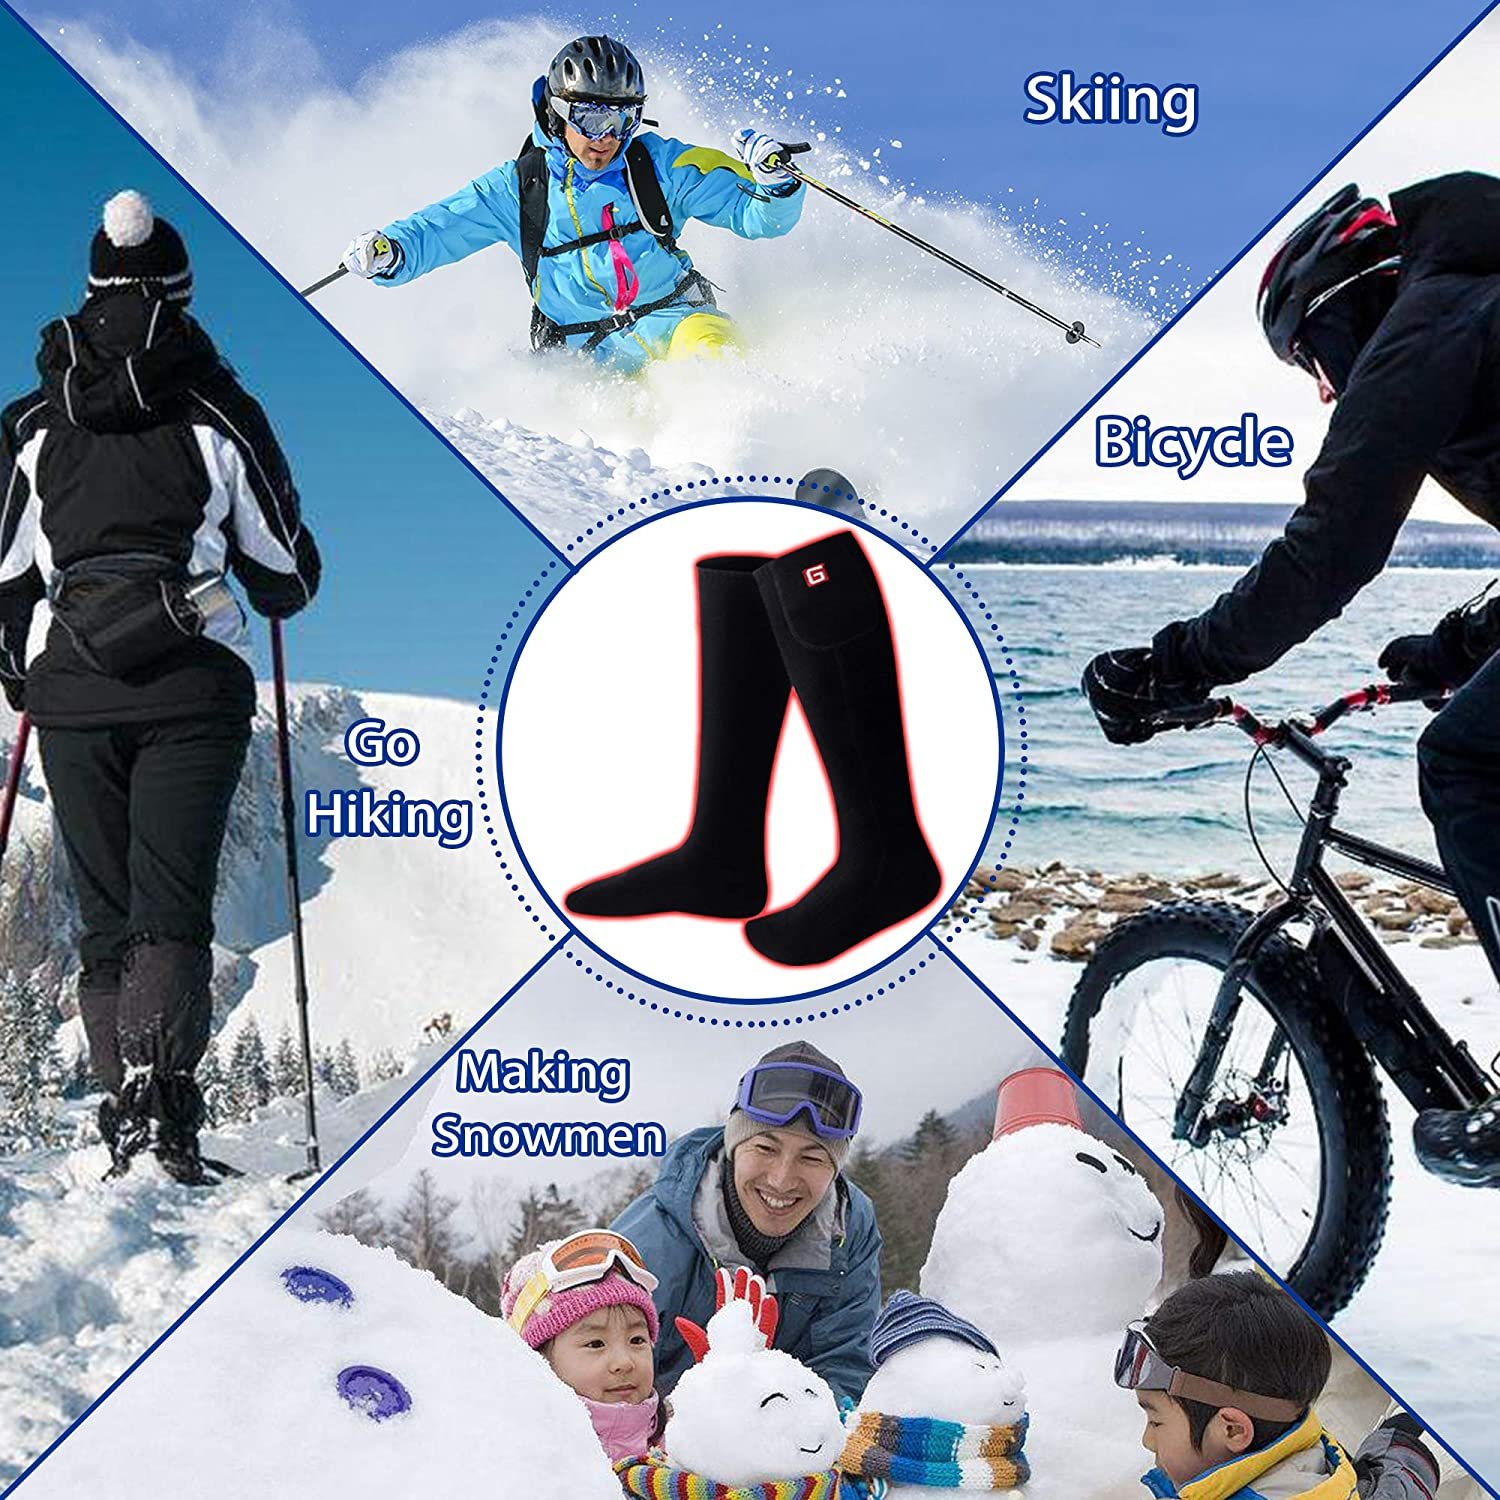 LTD SVPRO Men Women Electric Battery Heated Socks,Warm Winter Heated Socks,Cold Weather Thermal Insulated Socks for Chronically Cold Feet,Warm Foot Warmer for Camping SHENZHEN SVPRO TECHNOLOGY CO